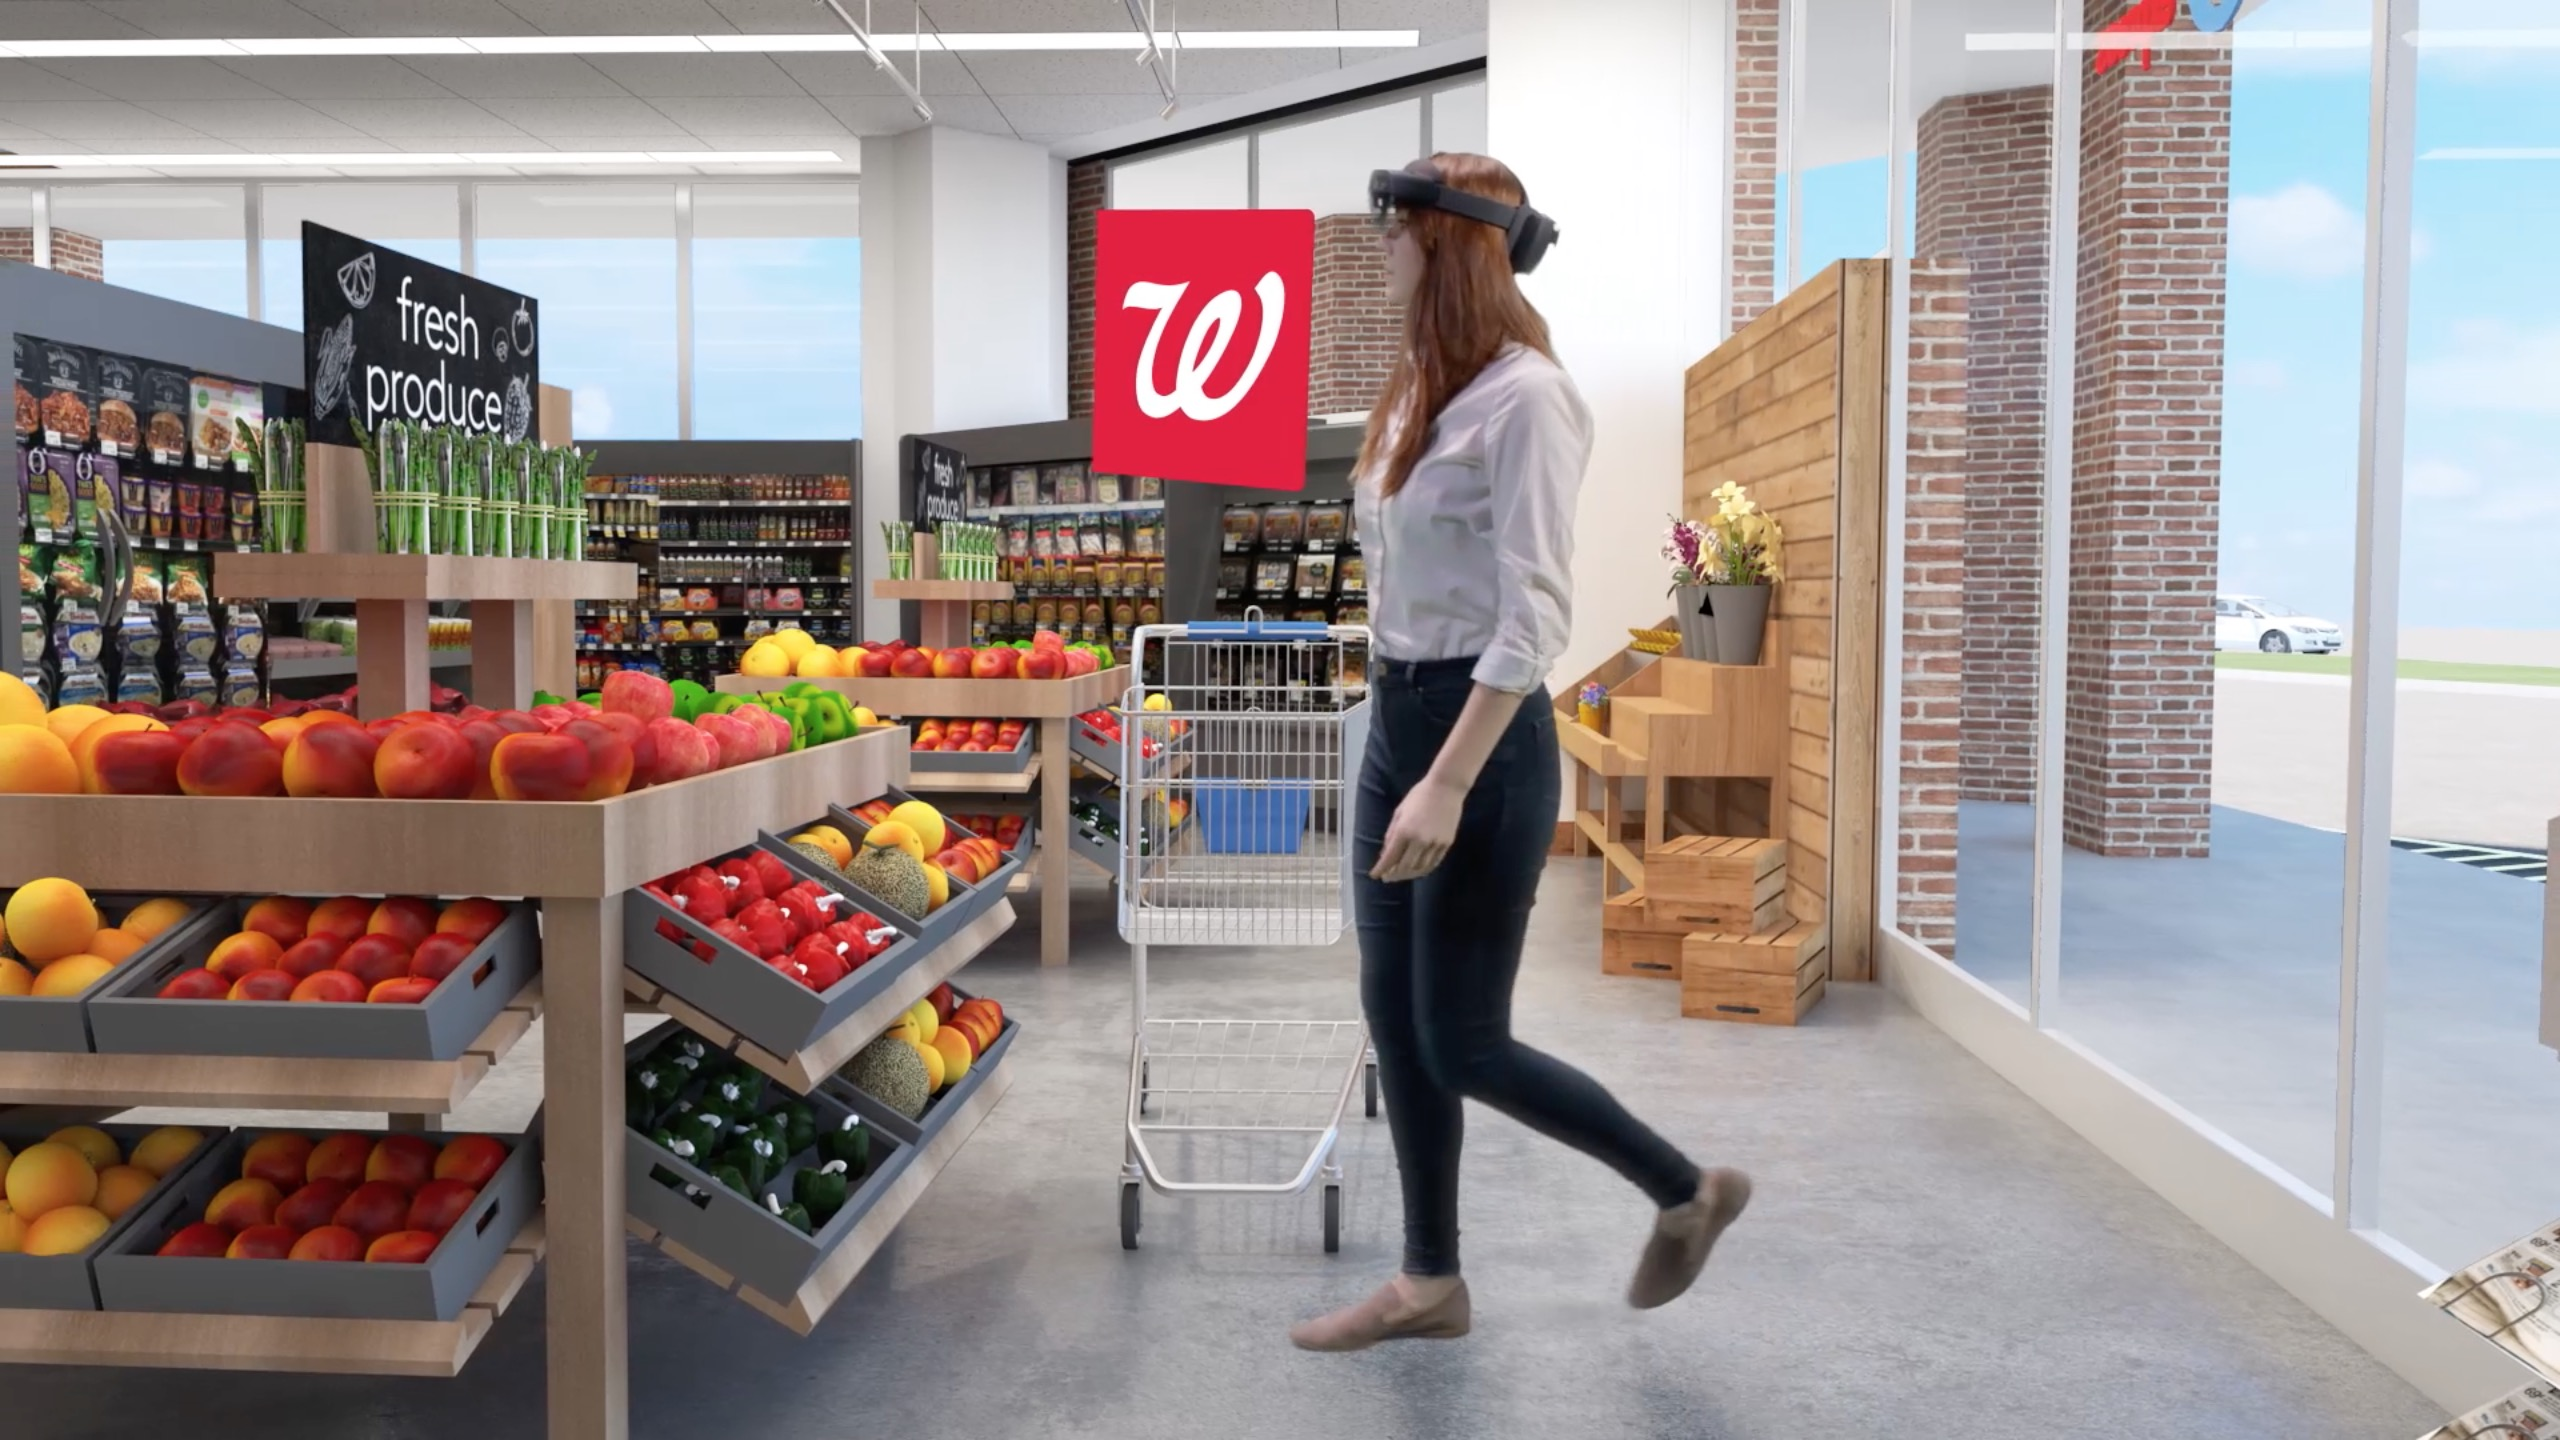 Add More Care to Your Career - Walgreens Jobs